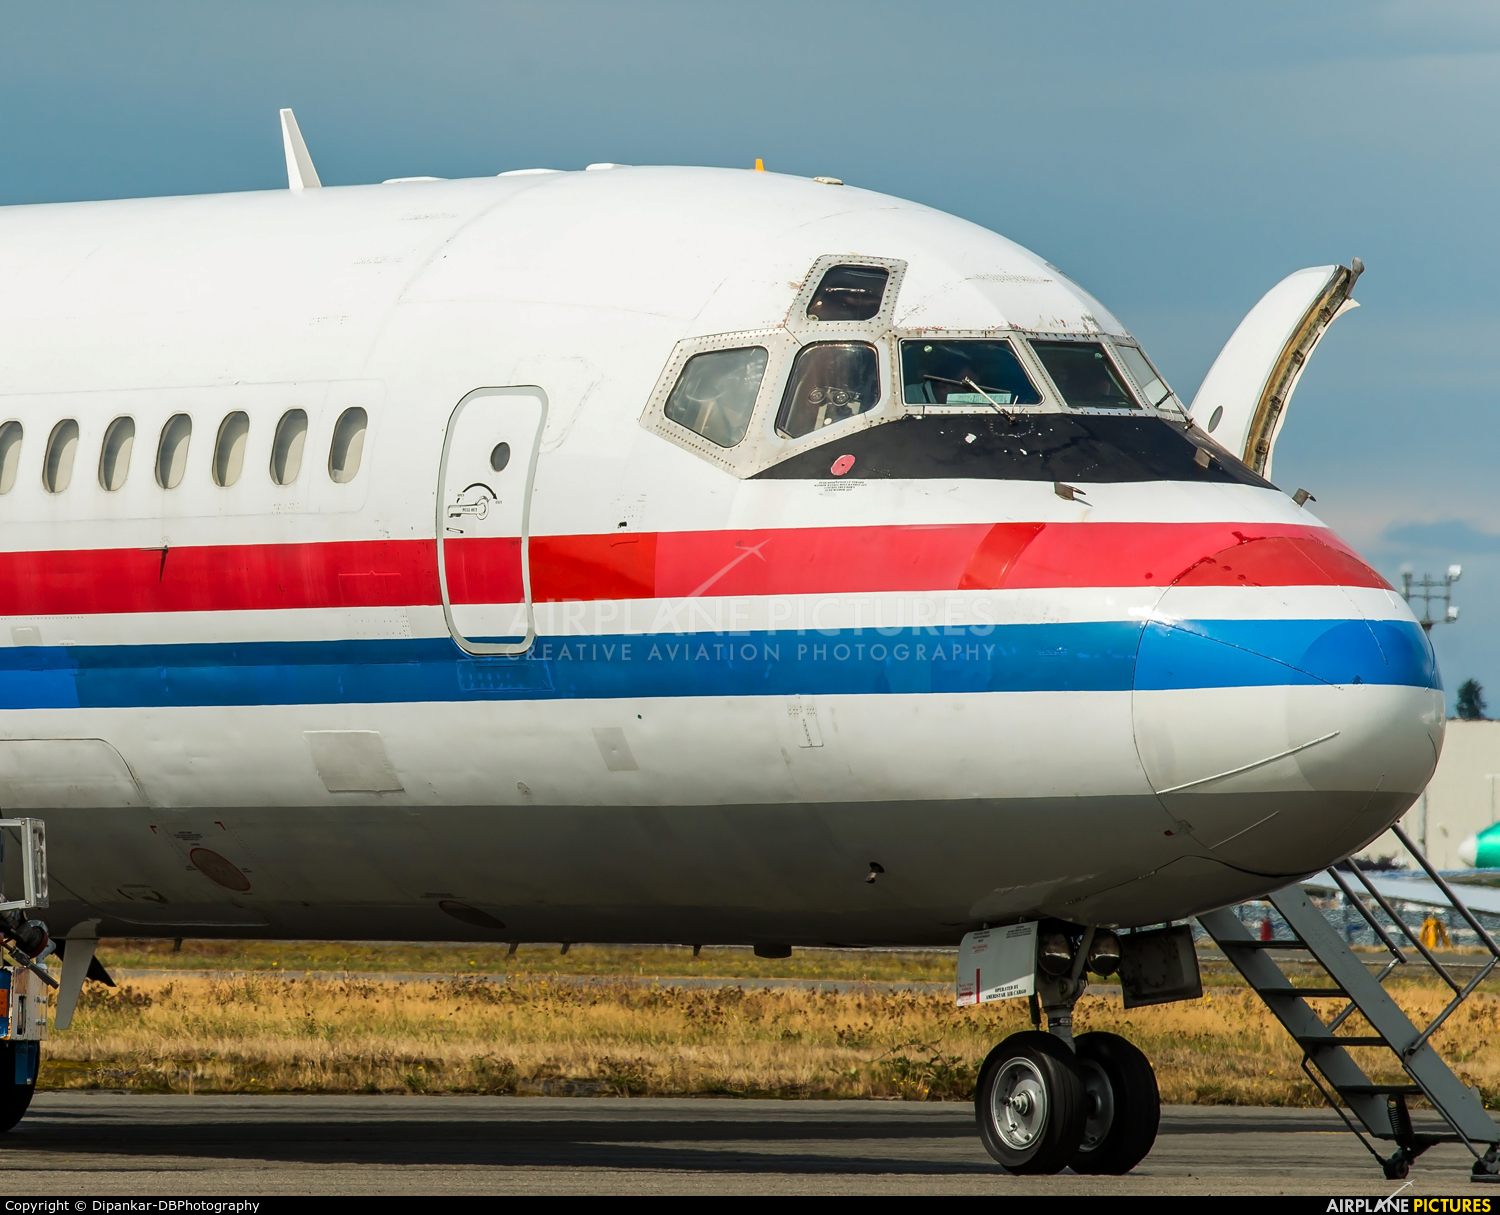 Ameristar Air Cargo N783TW aircraft at Everett - Snohomish County / Paine Field